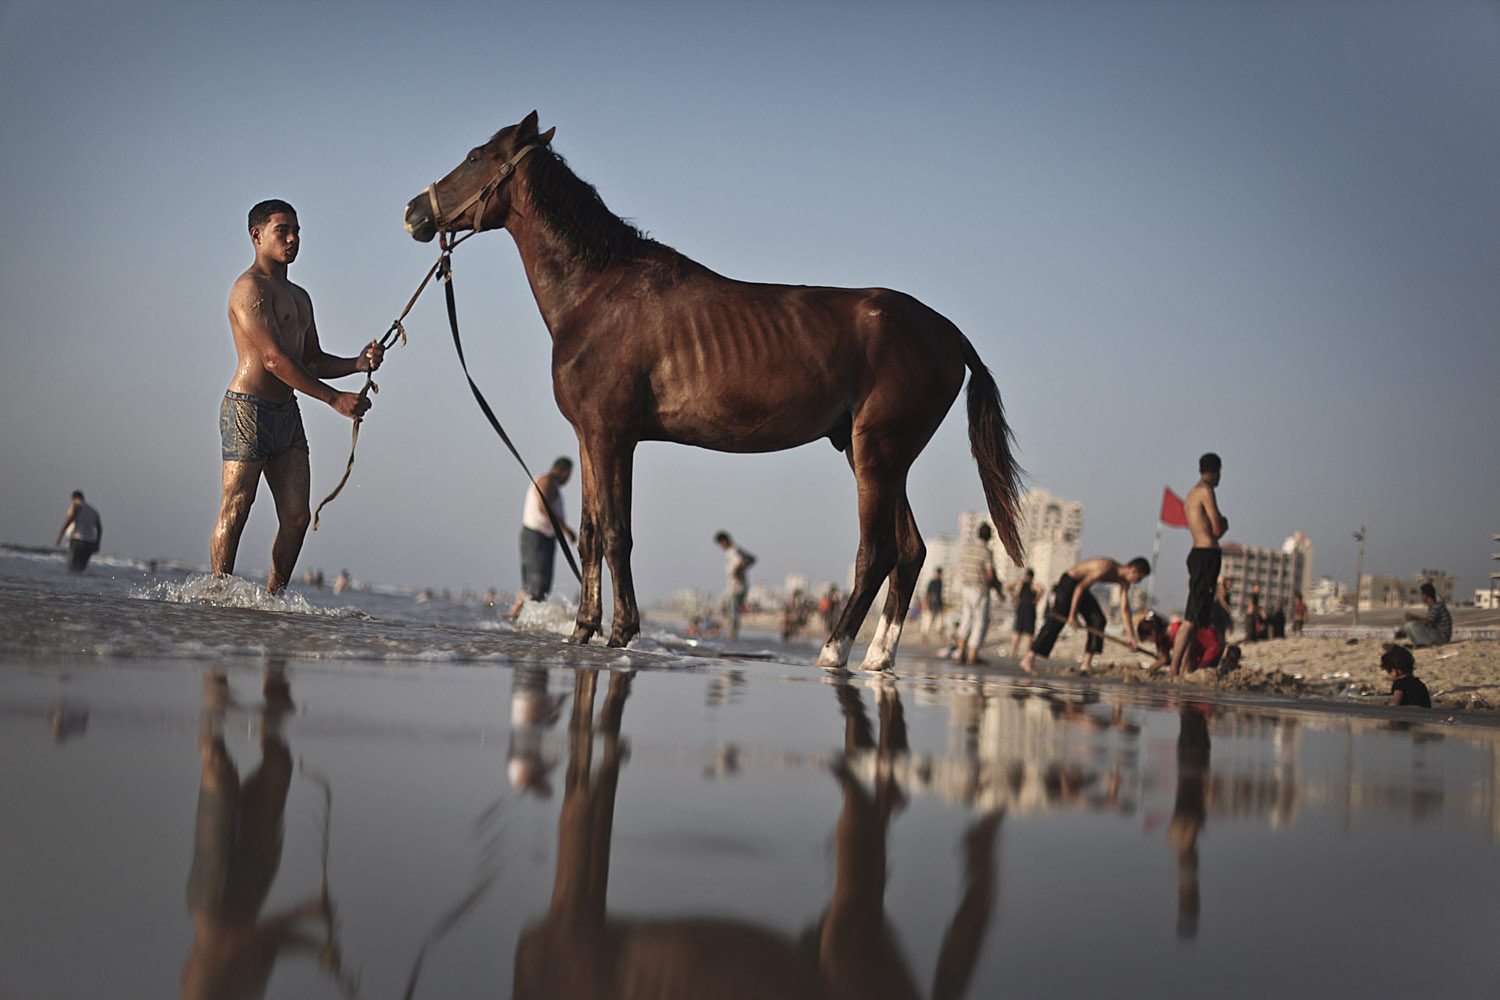 Aug. 12, 2012. A Palestinian man leads a horse into the water to have a bath on the beach as Palestinians enjoy a summer day at the sea shore in the west of Gaza City.